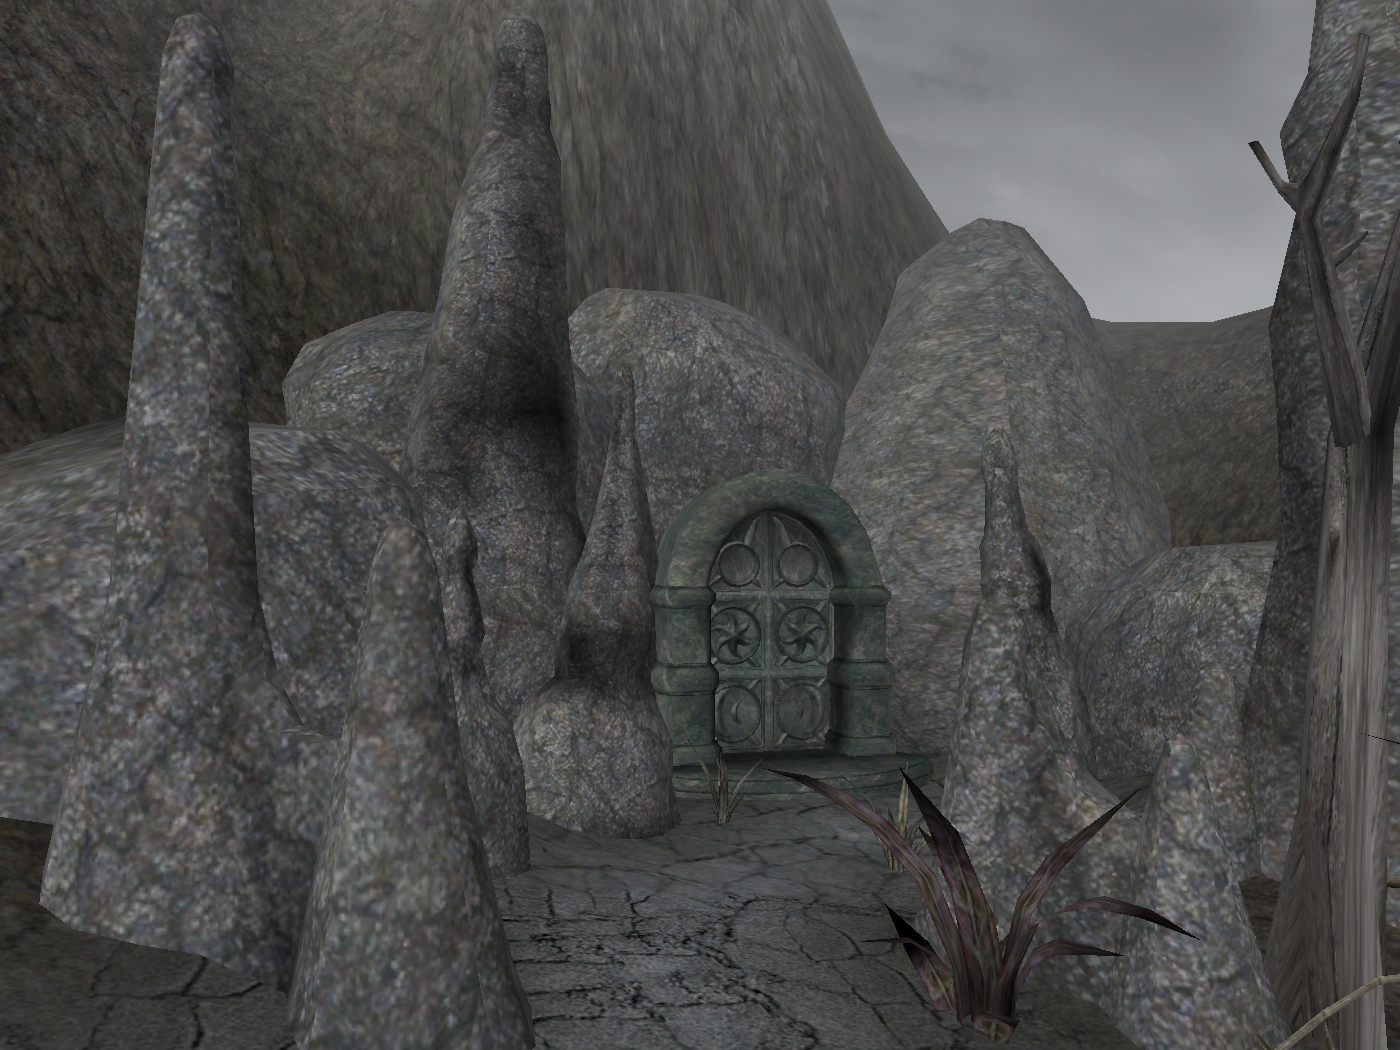 Cavern of the Incarnate (Morrowind)